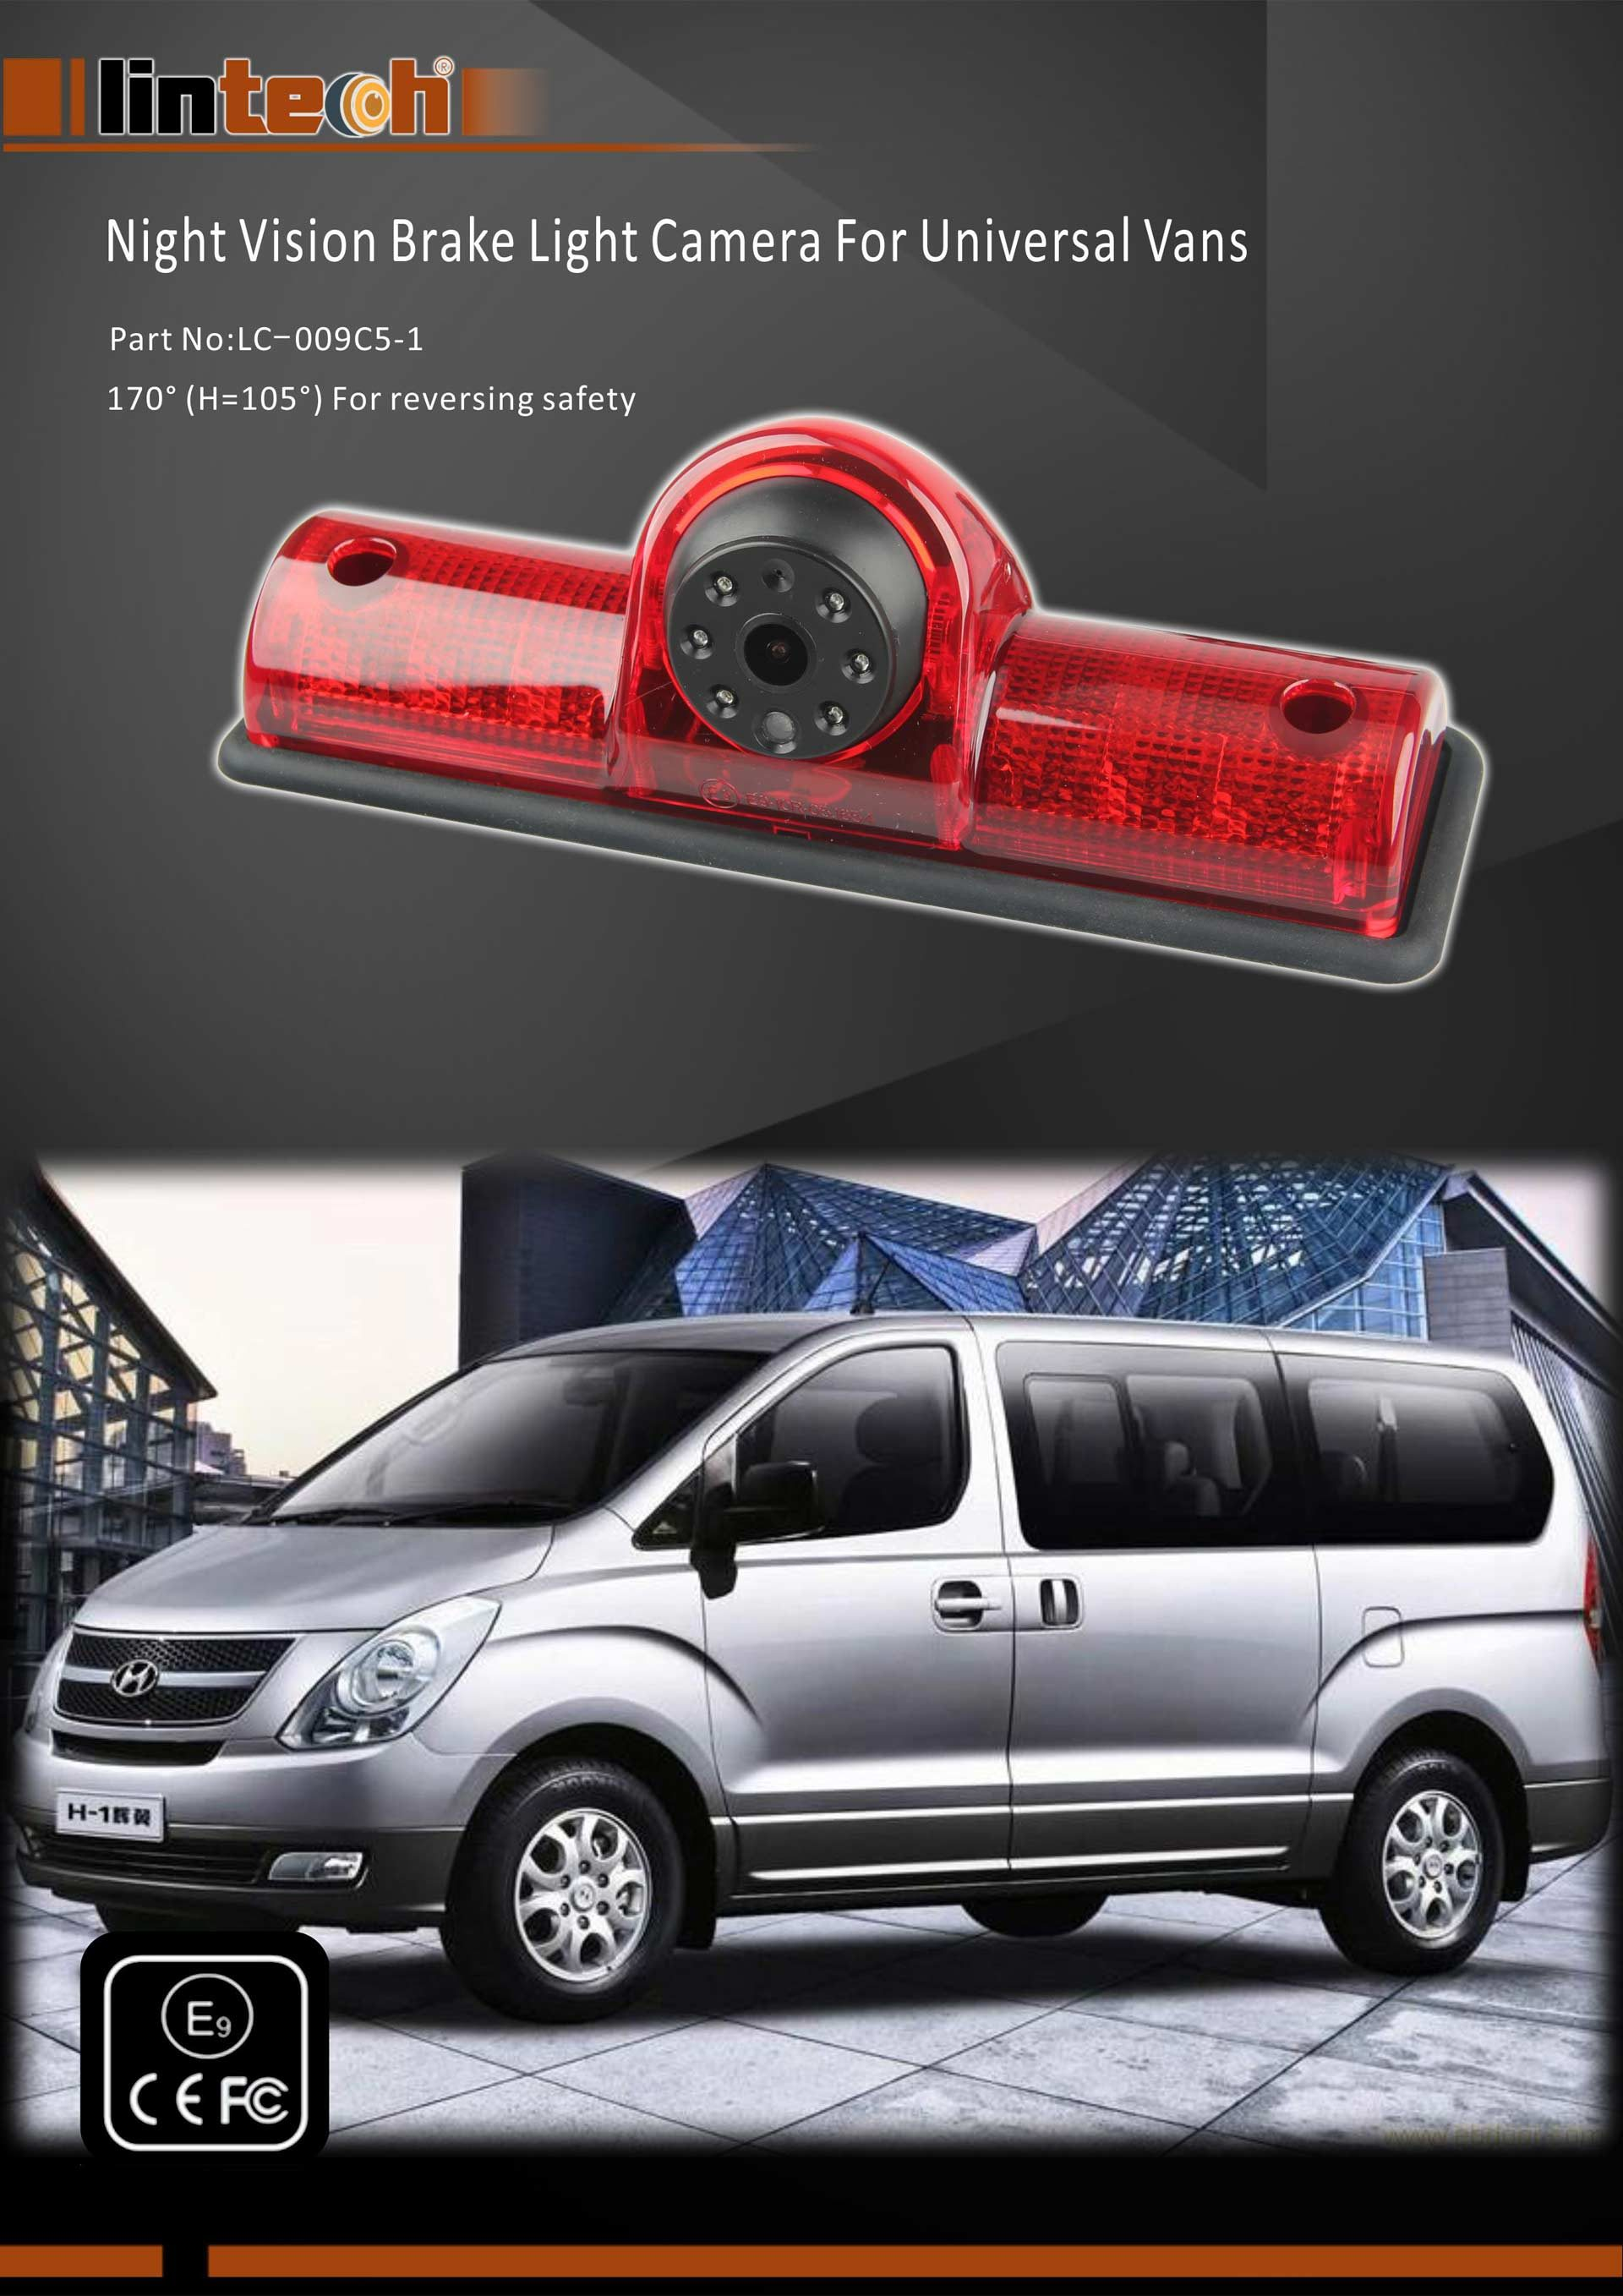 1.Night Vision Brake Light Camera for Universal Vans